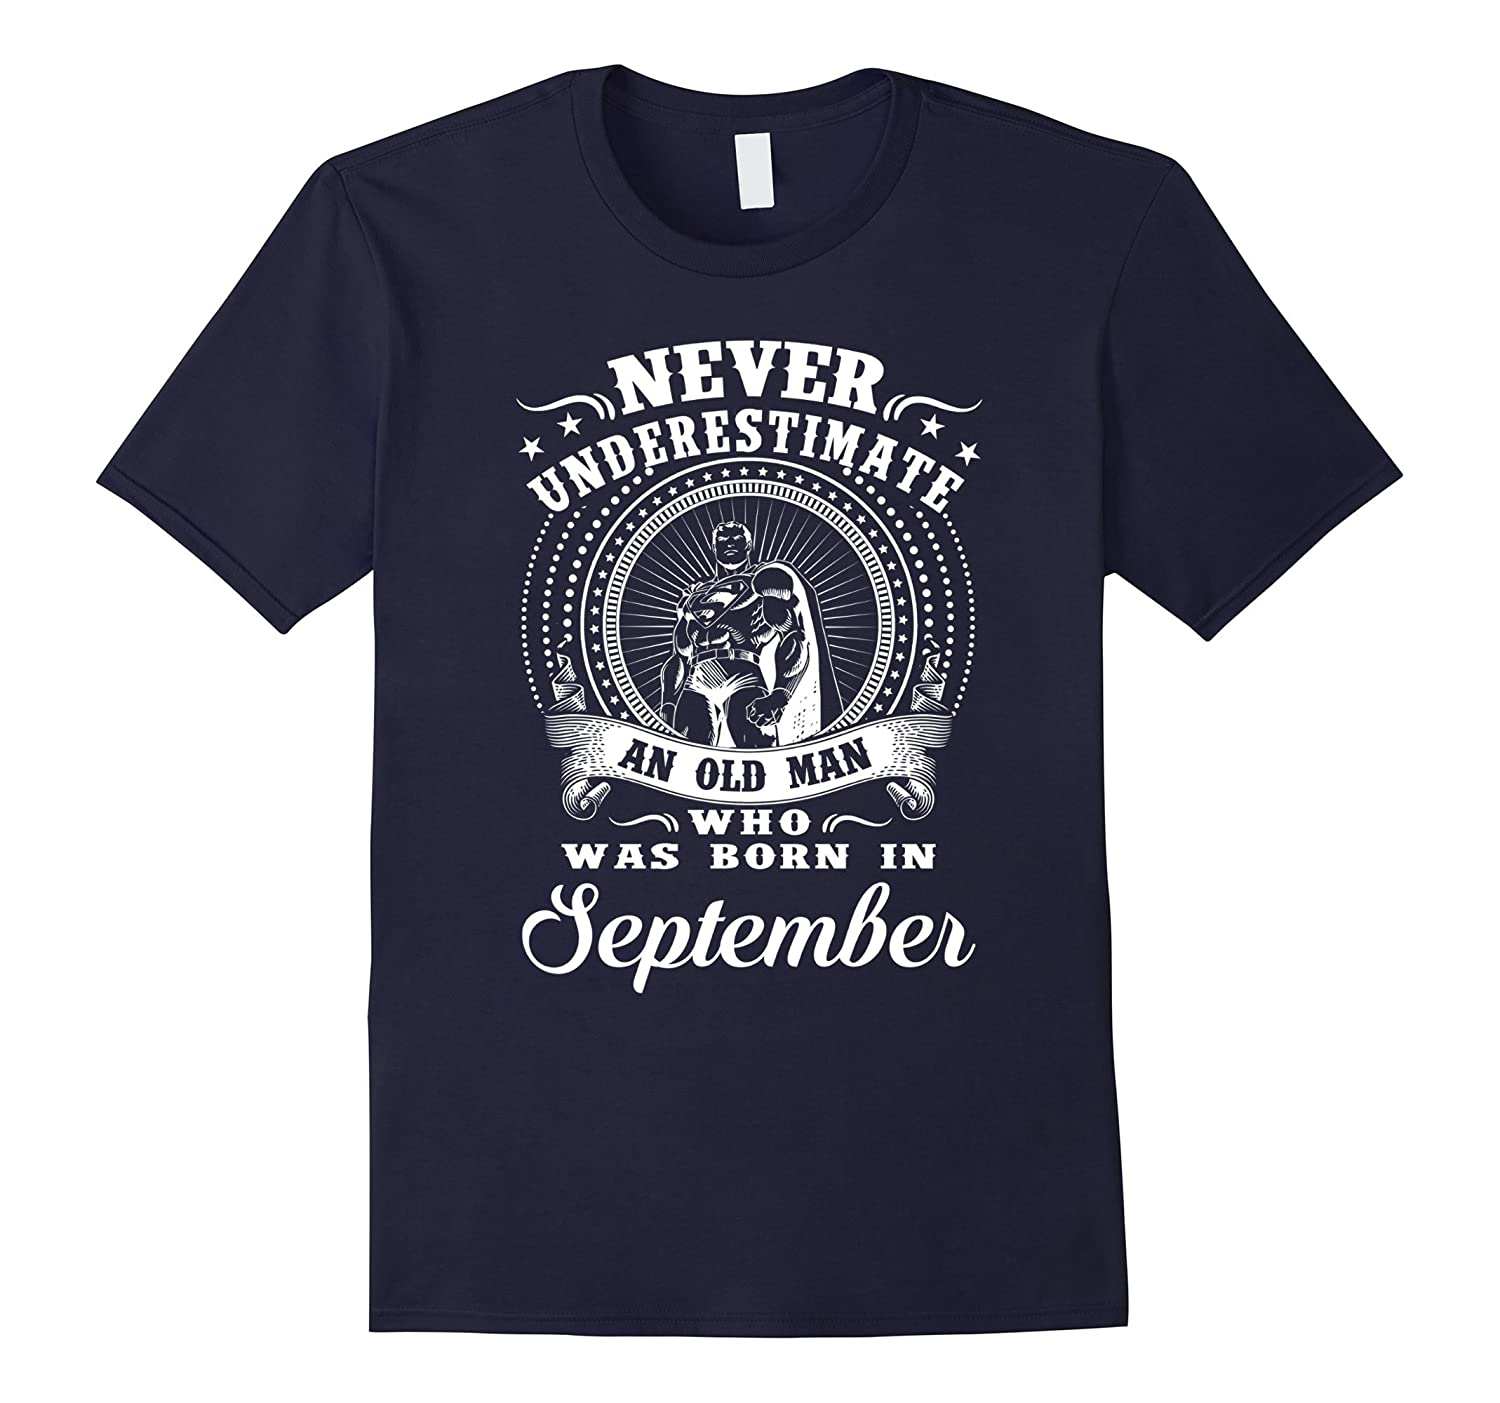 An old man who was born in September T-shirt-BN